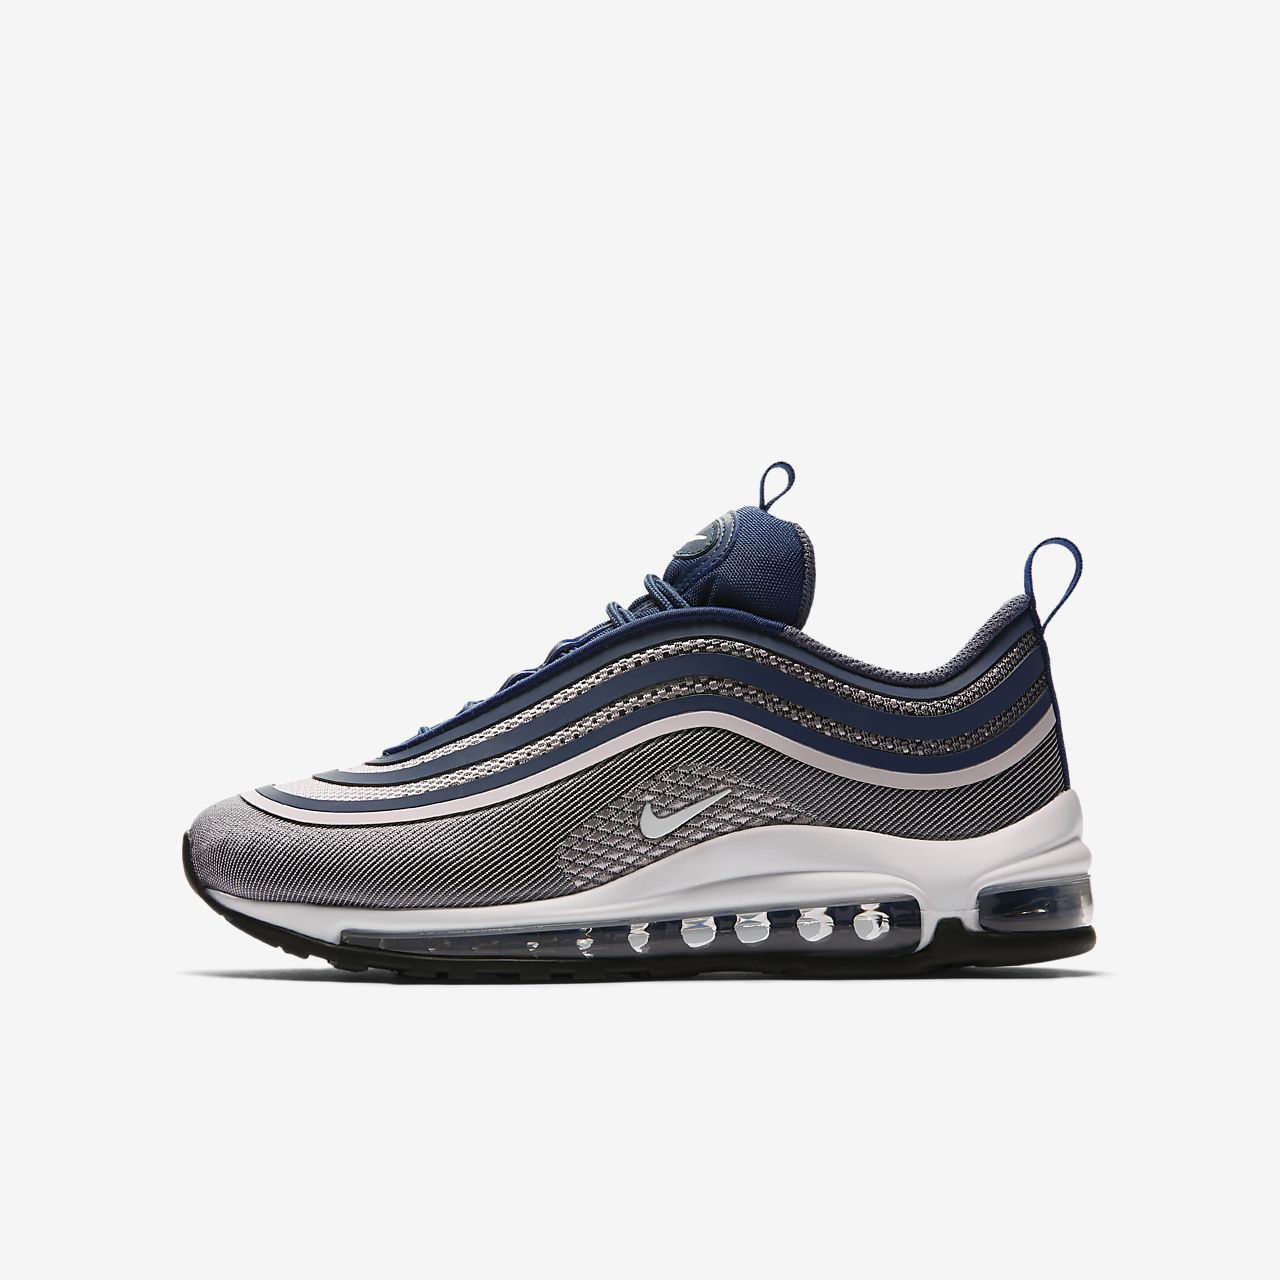 new style ad446 886f7 Nike Air Max Kids : Nike × Men and Women's shoes 2018 ...